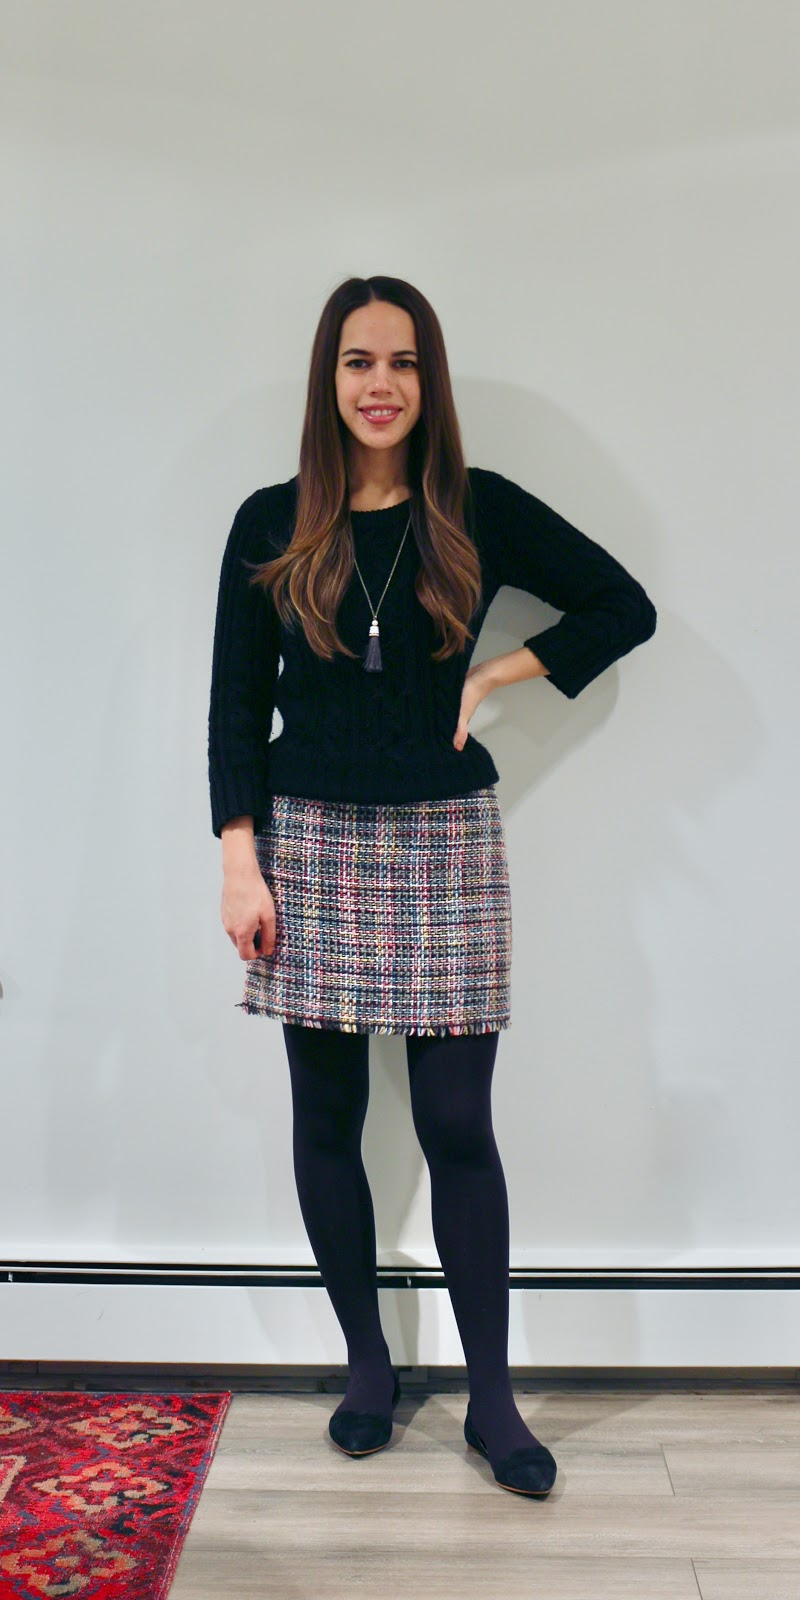 Jules in Flats - H&M Jacquard Tweed Mini Skirt with Cable Knit Sweater (Business Casual Winter Workwear on a Budget)